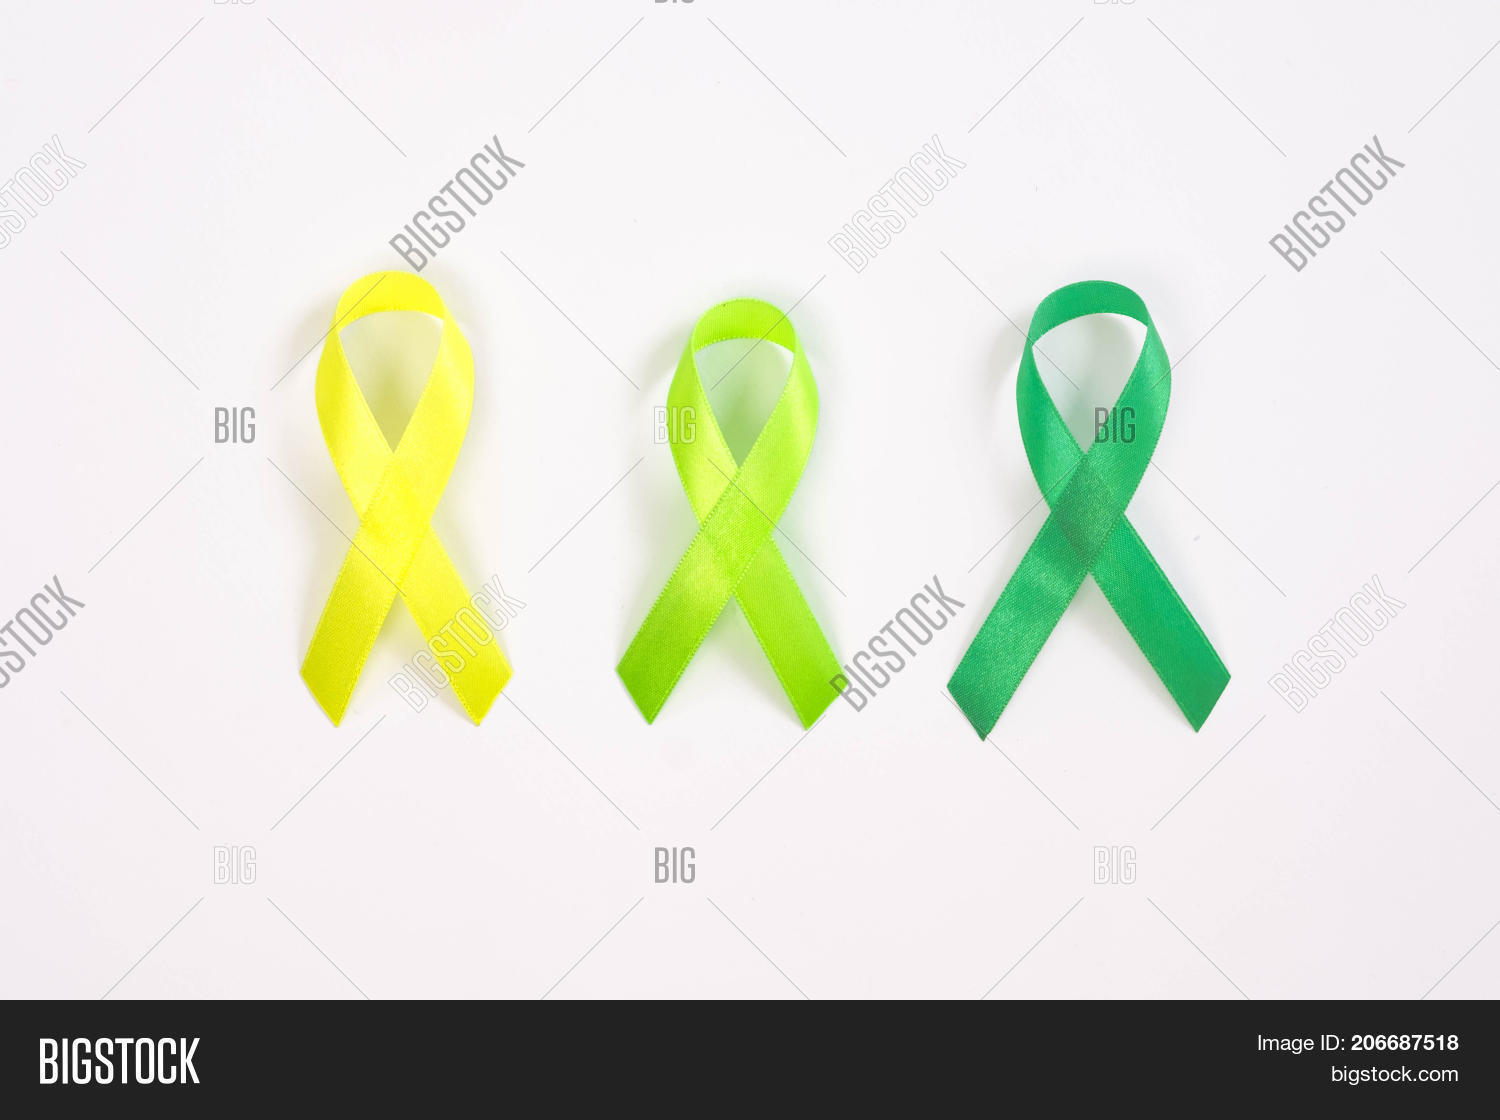 Gradients Green Ribbon Image Photo Free Trial Bigstock